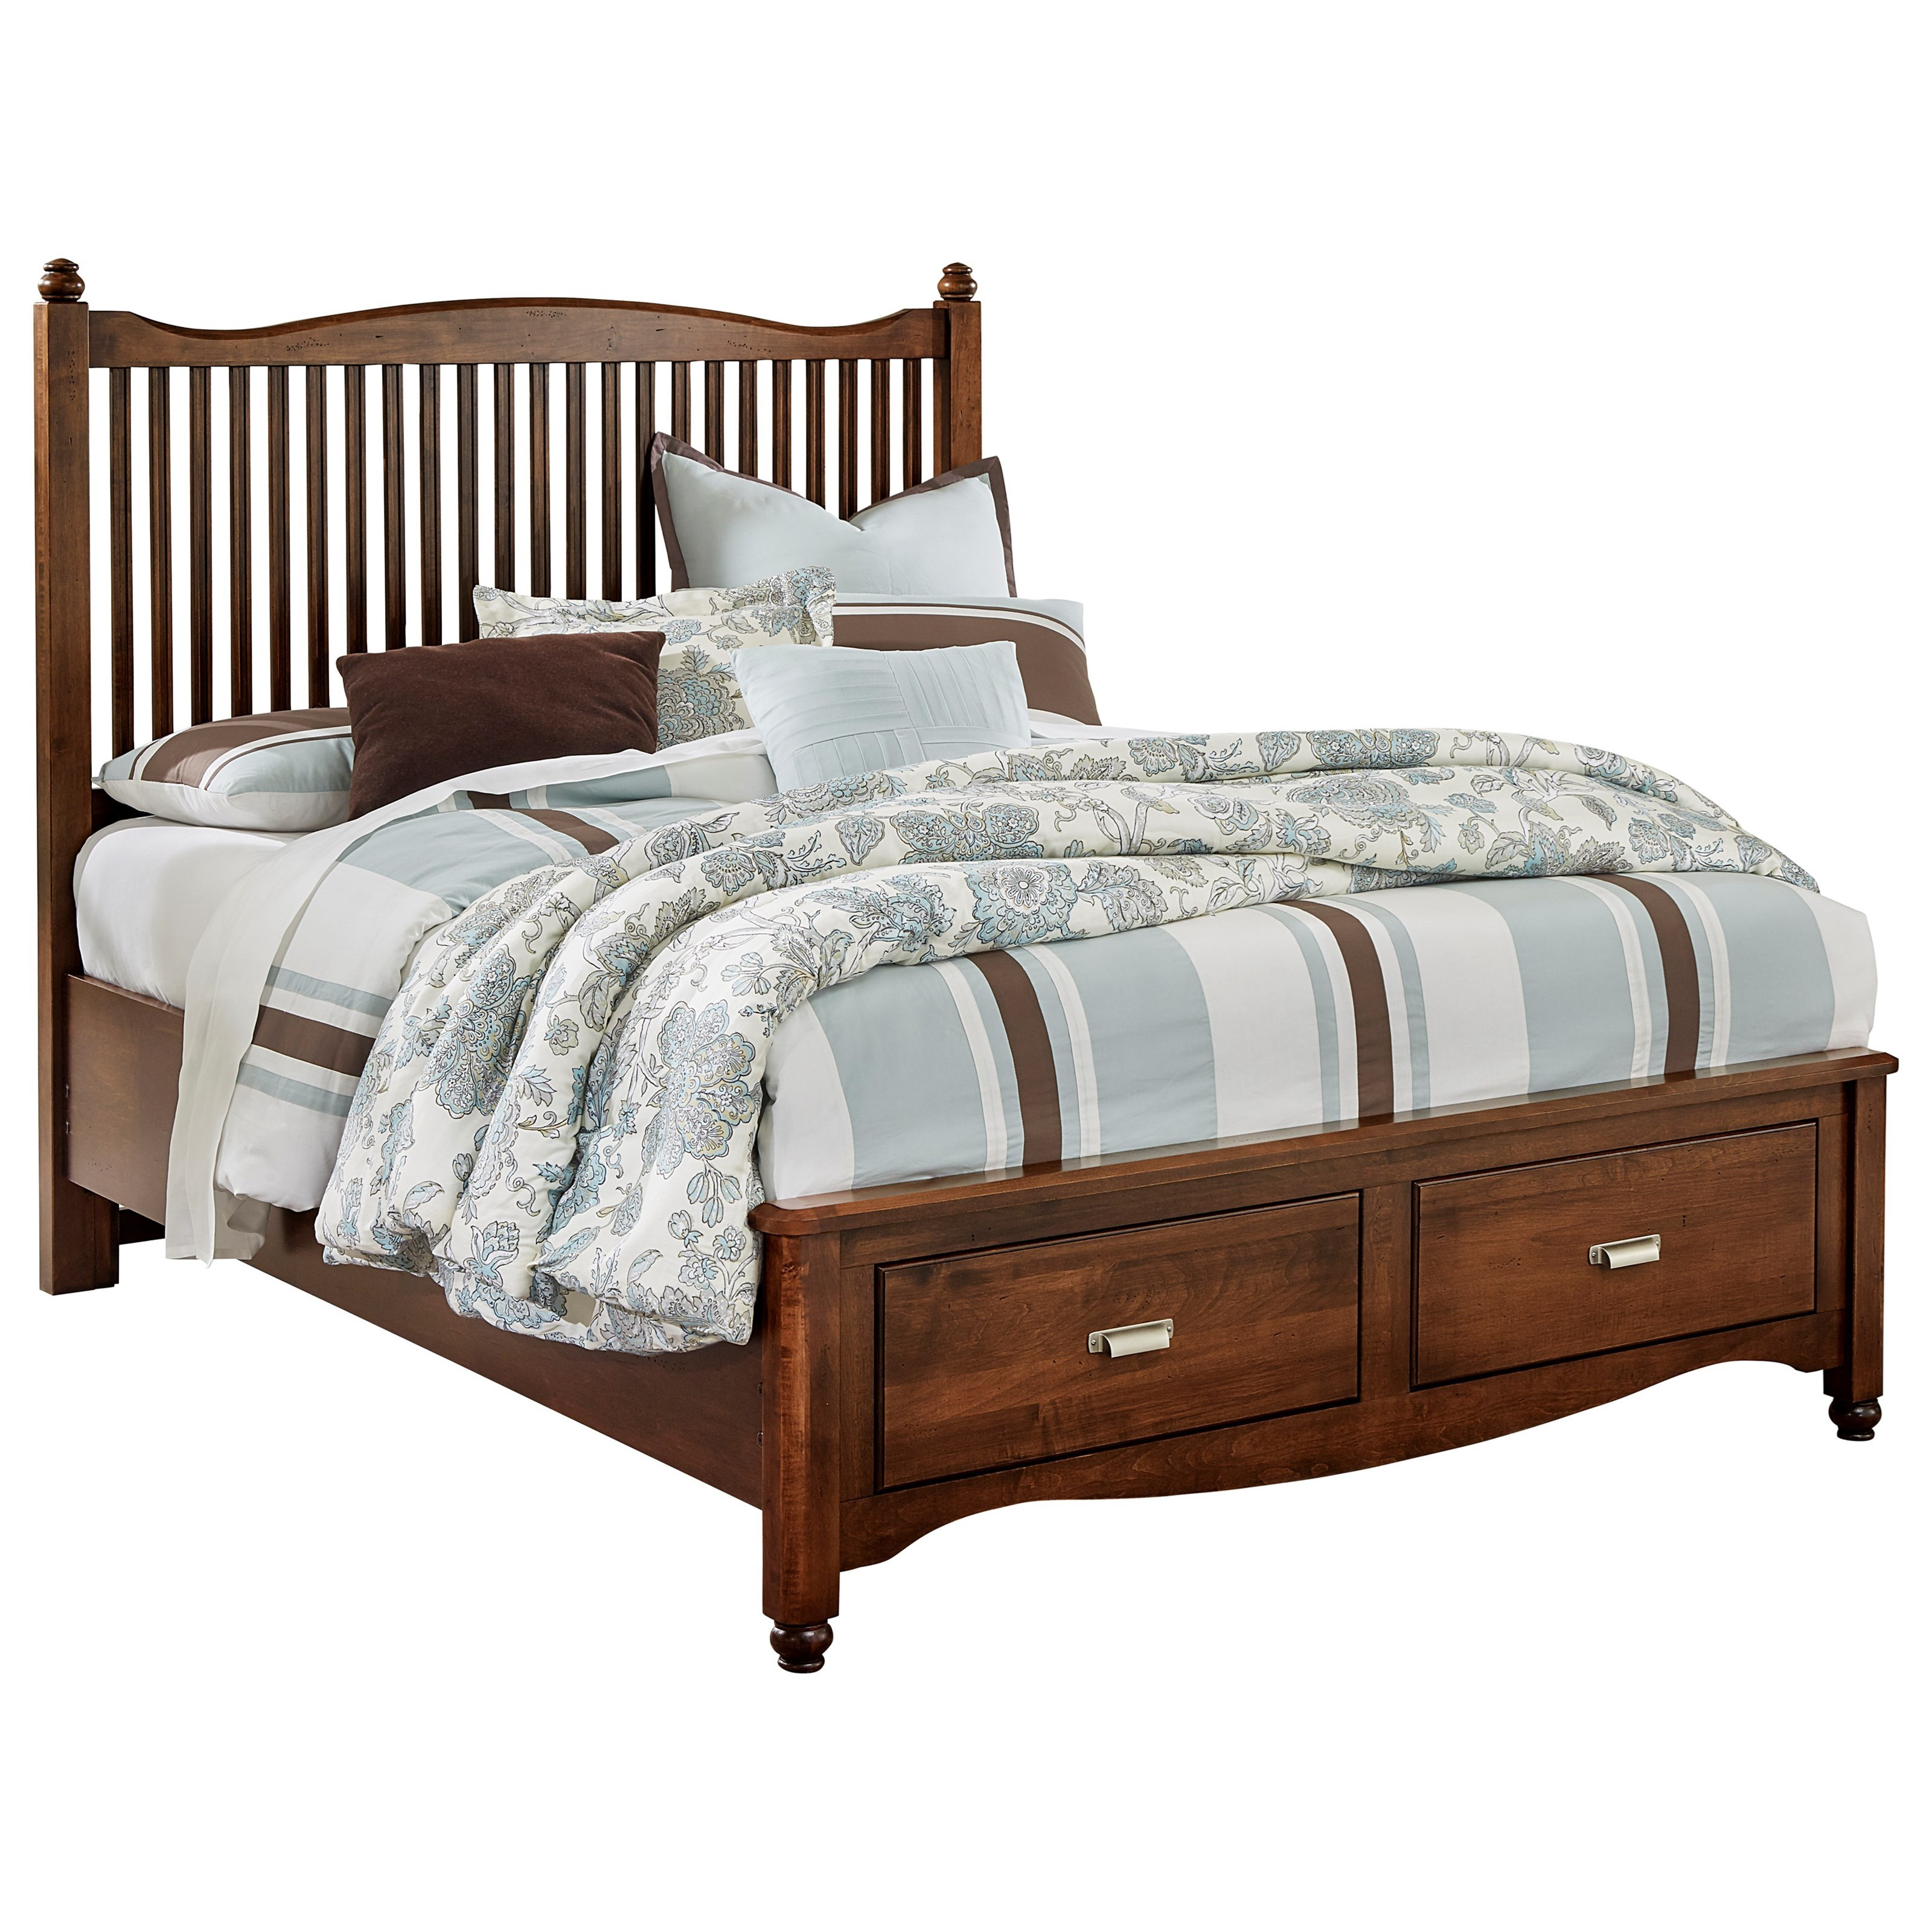 Vaughan Bassett American Maple Solid Wood Queen Slat Storage Bed Dunk Bright Furniture